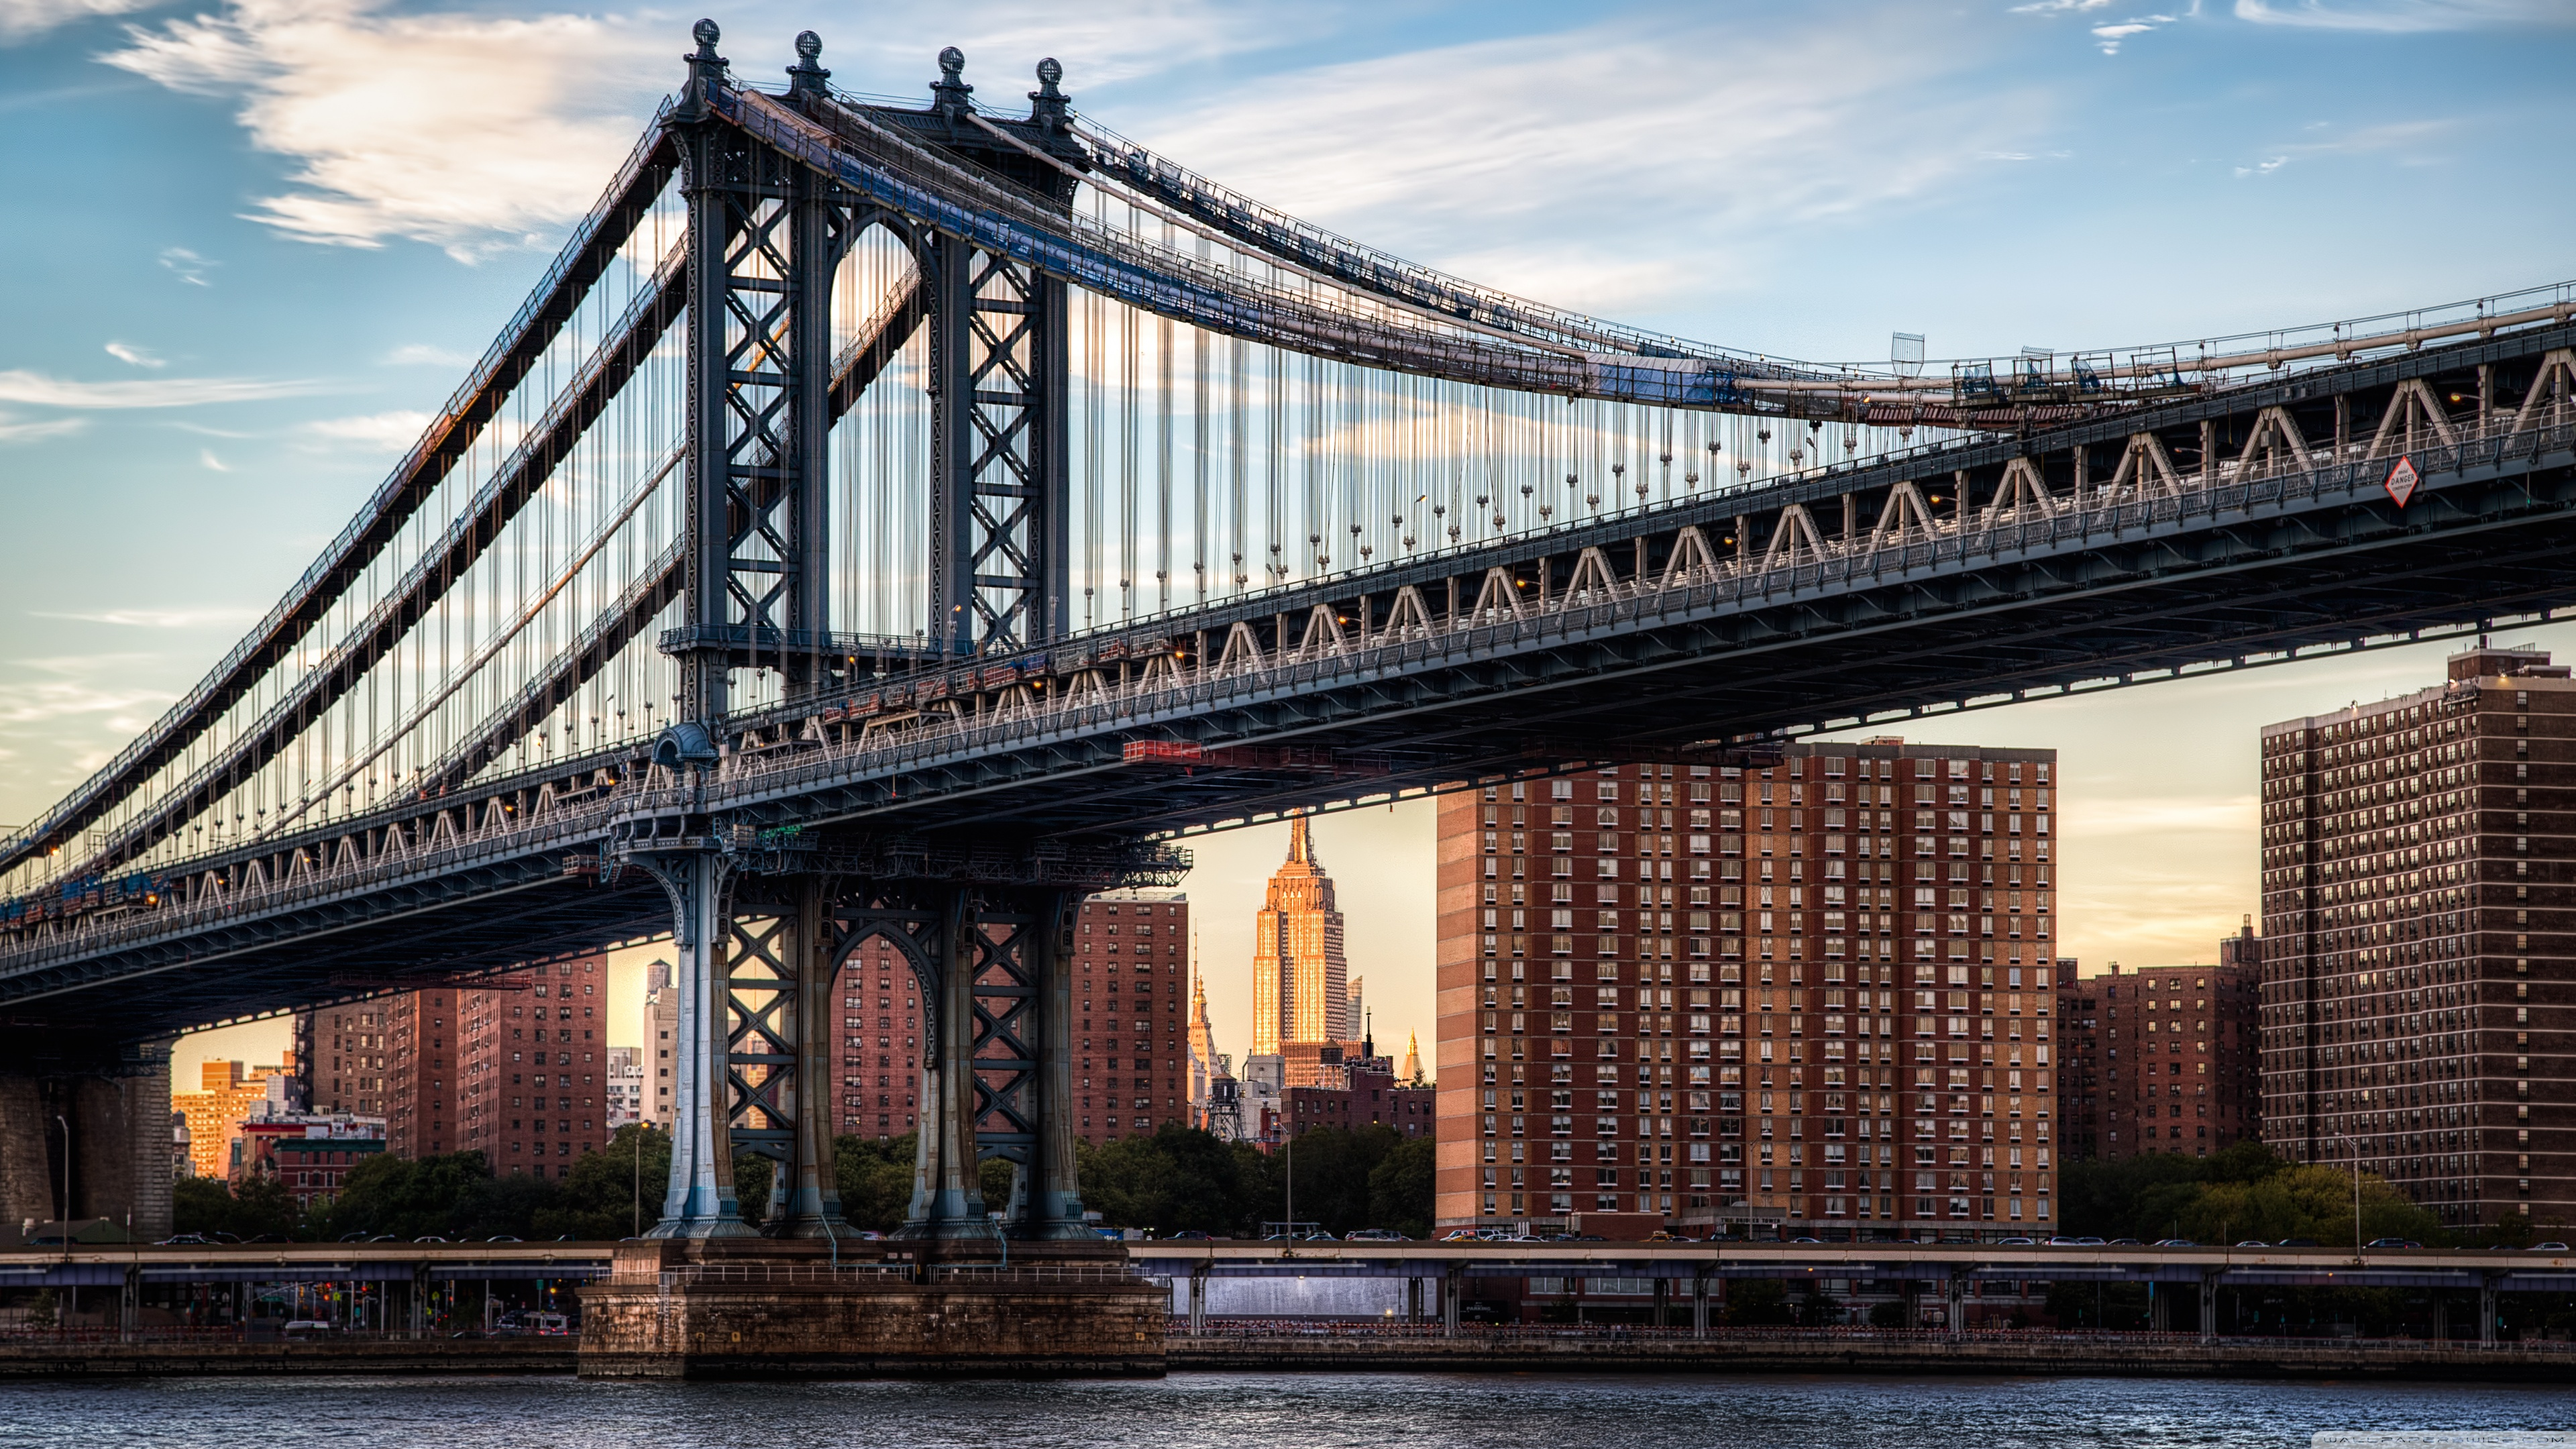 Manhattan Bridge Wallpapers and Background Images   stmednet 3840x2160